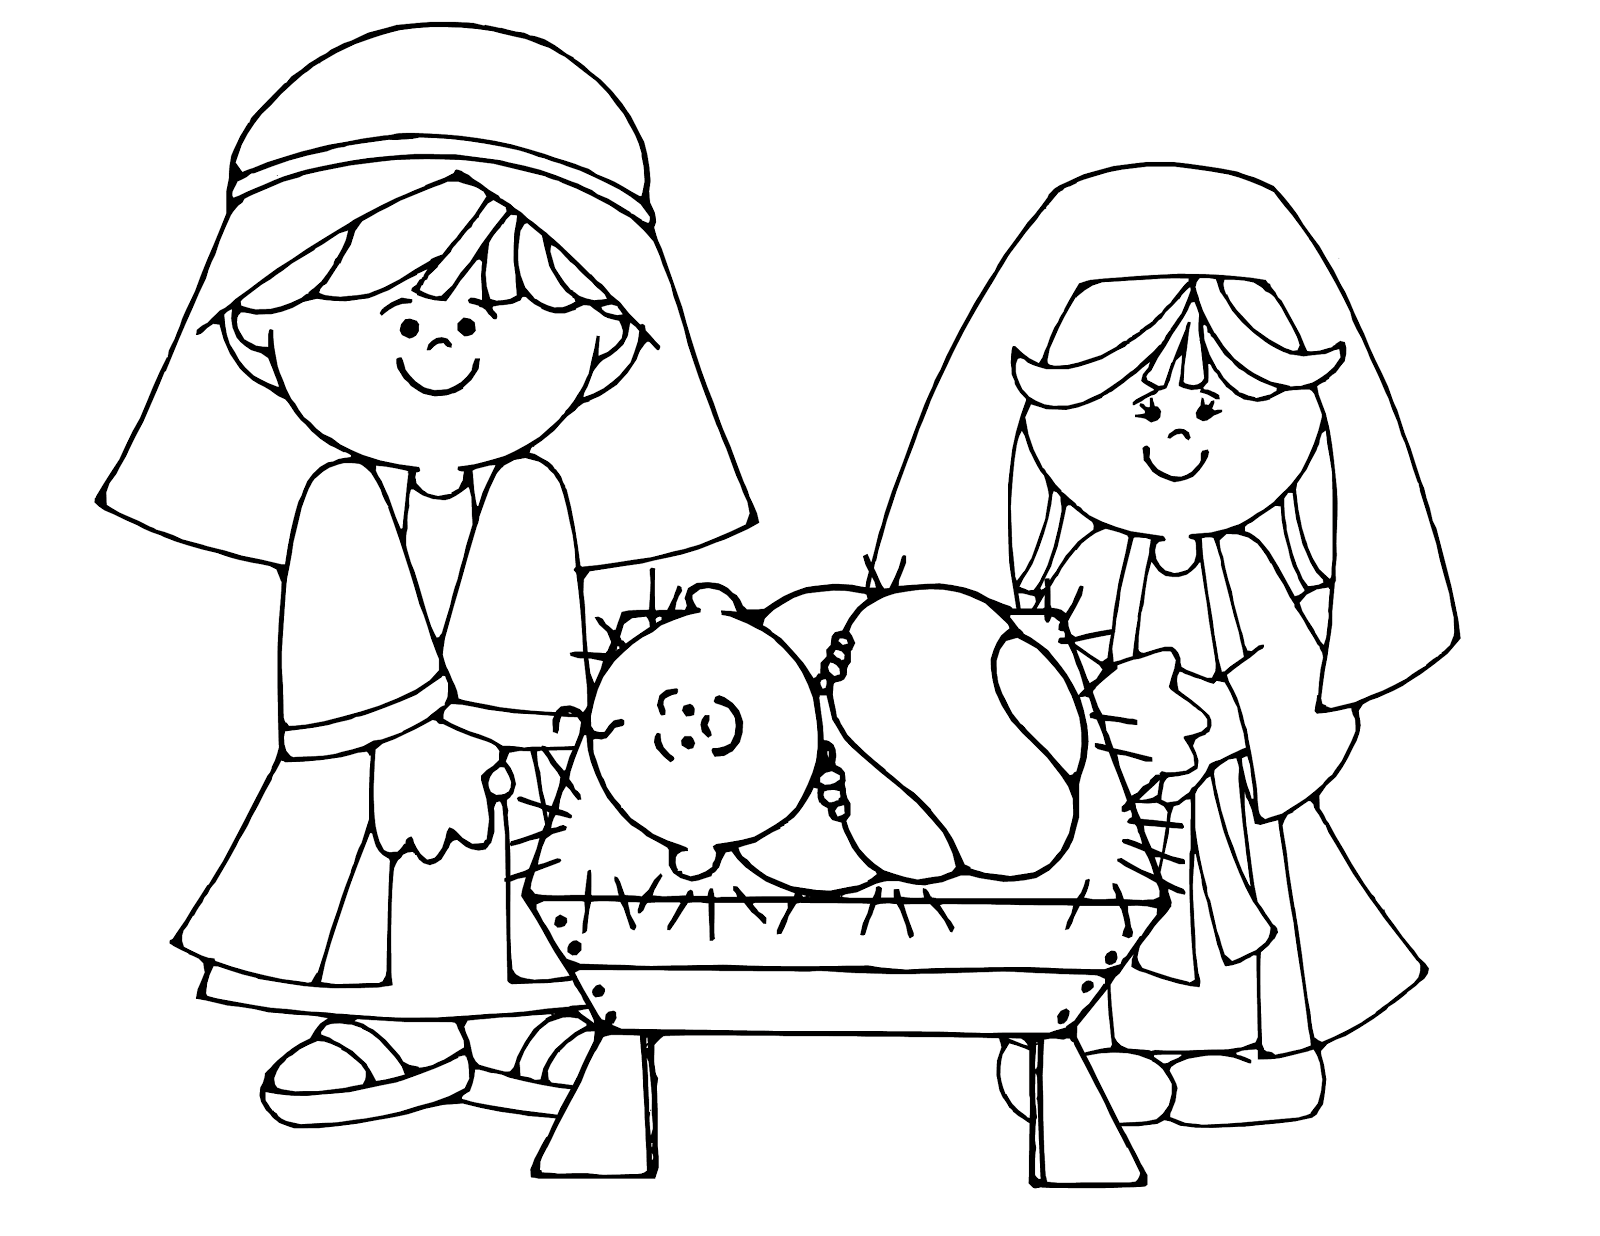 Christmas Colouring Pages Nativity With Simple Scene Page Kids Crafts Pinterest